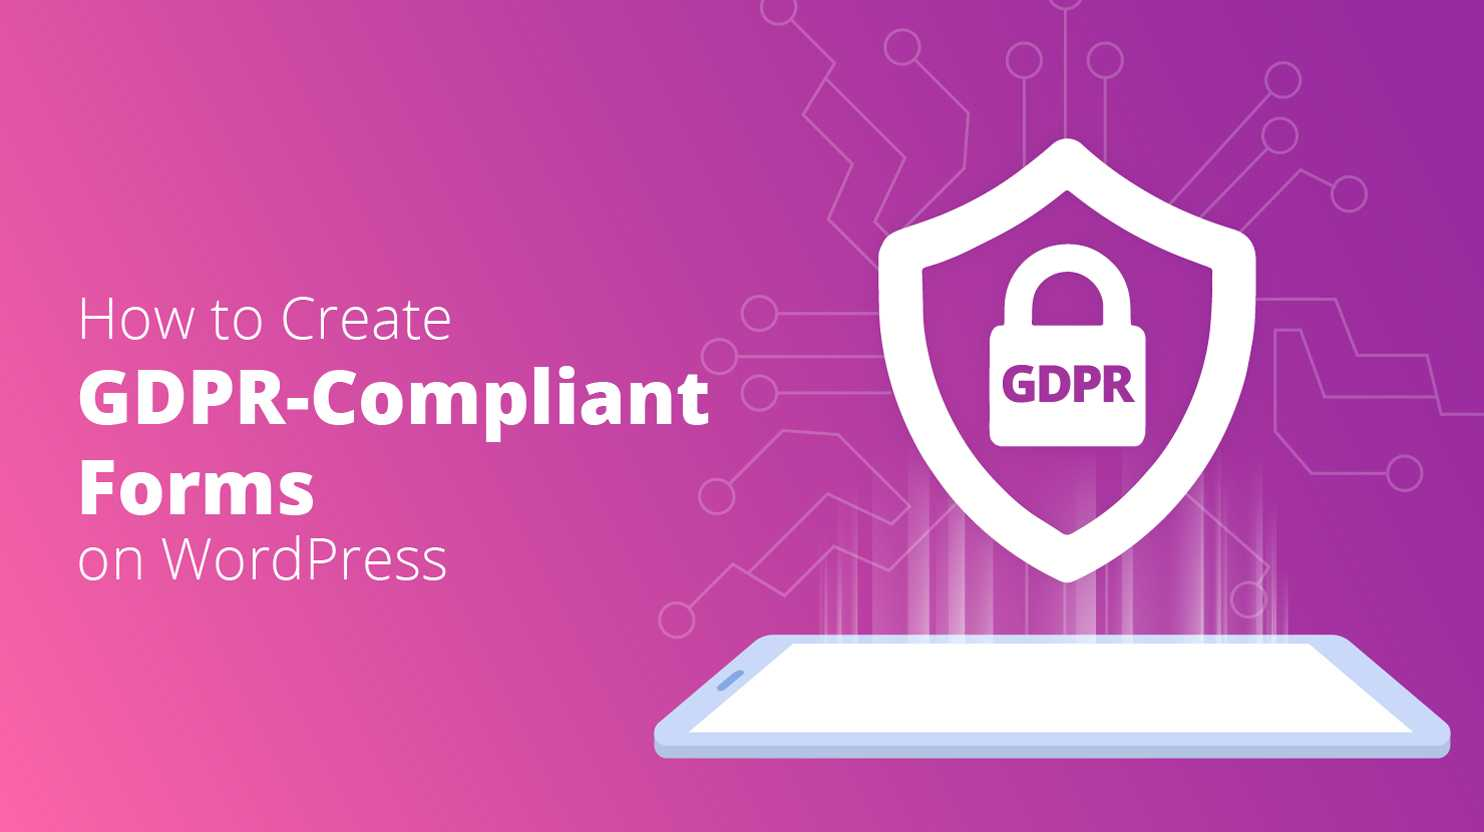 GDPR compliant forms